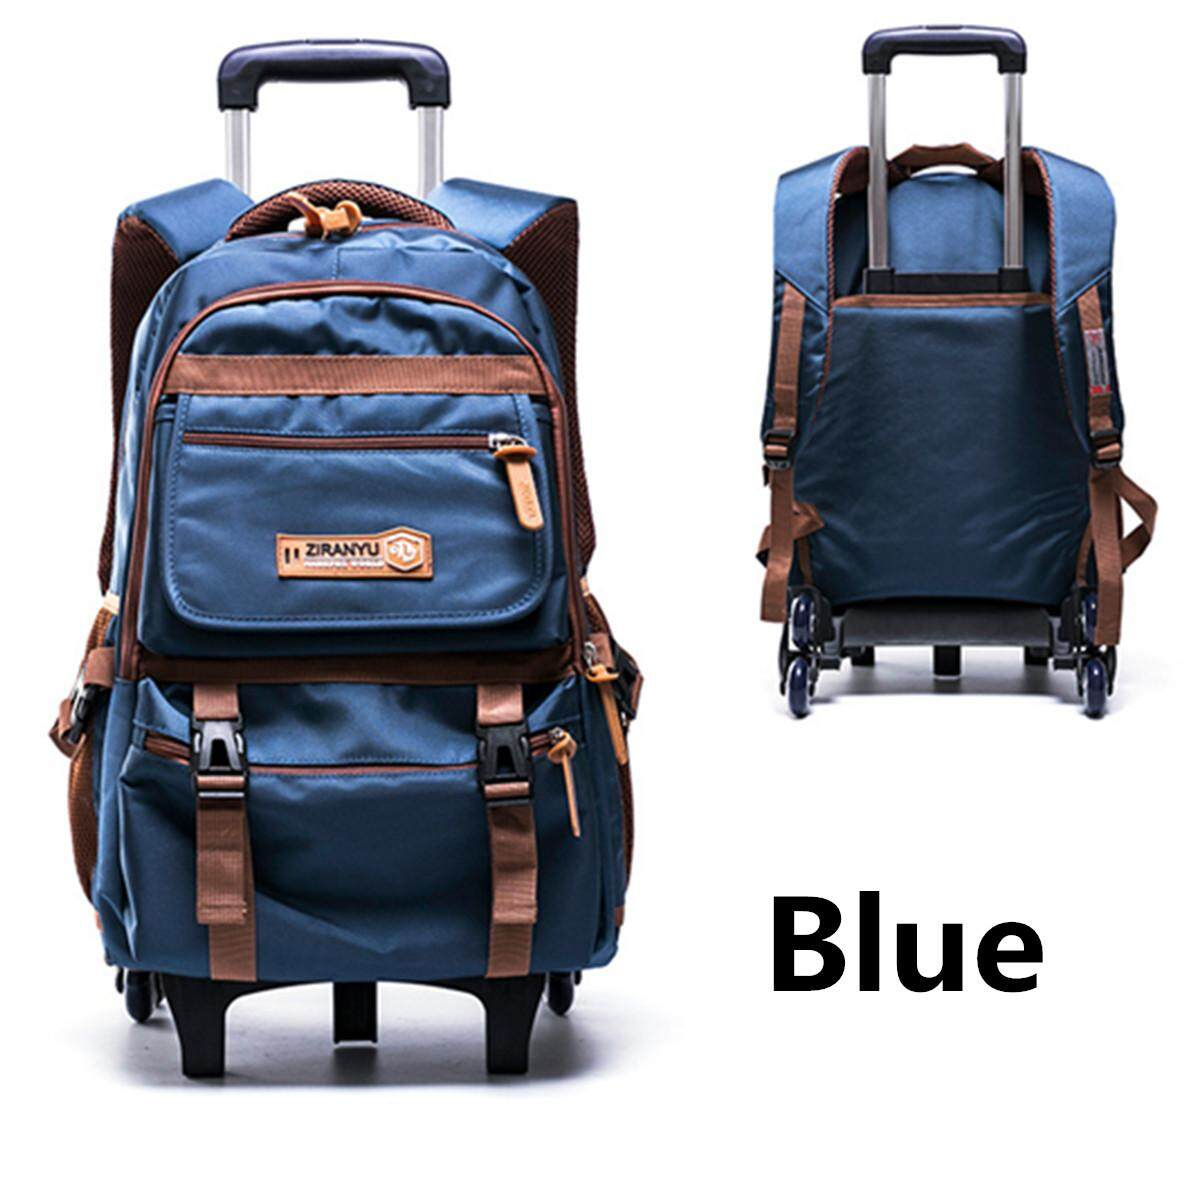 057ee4796d Six Wheels Teenagers Student Handbag School Bag Trolley Backpack Removable  6  wheel